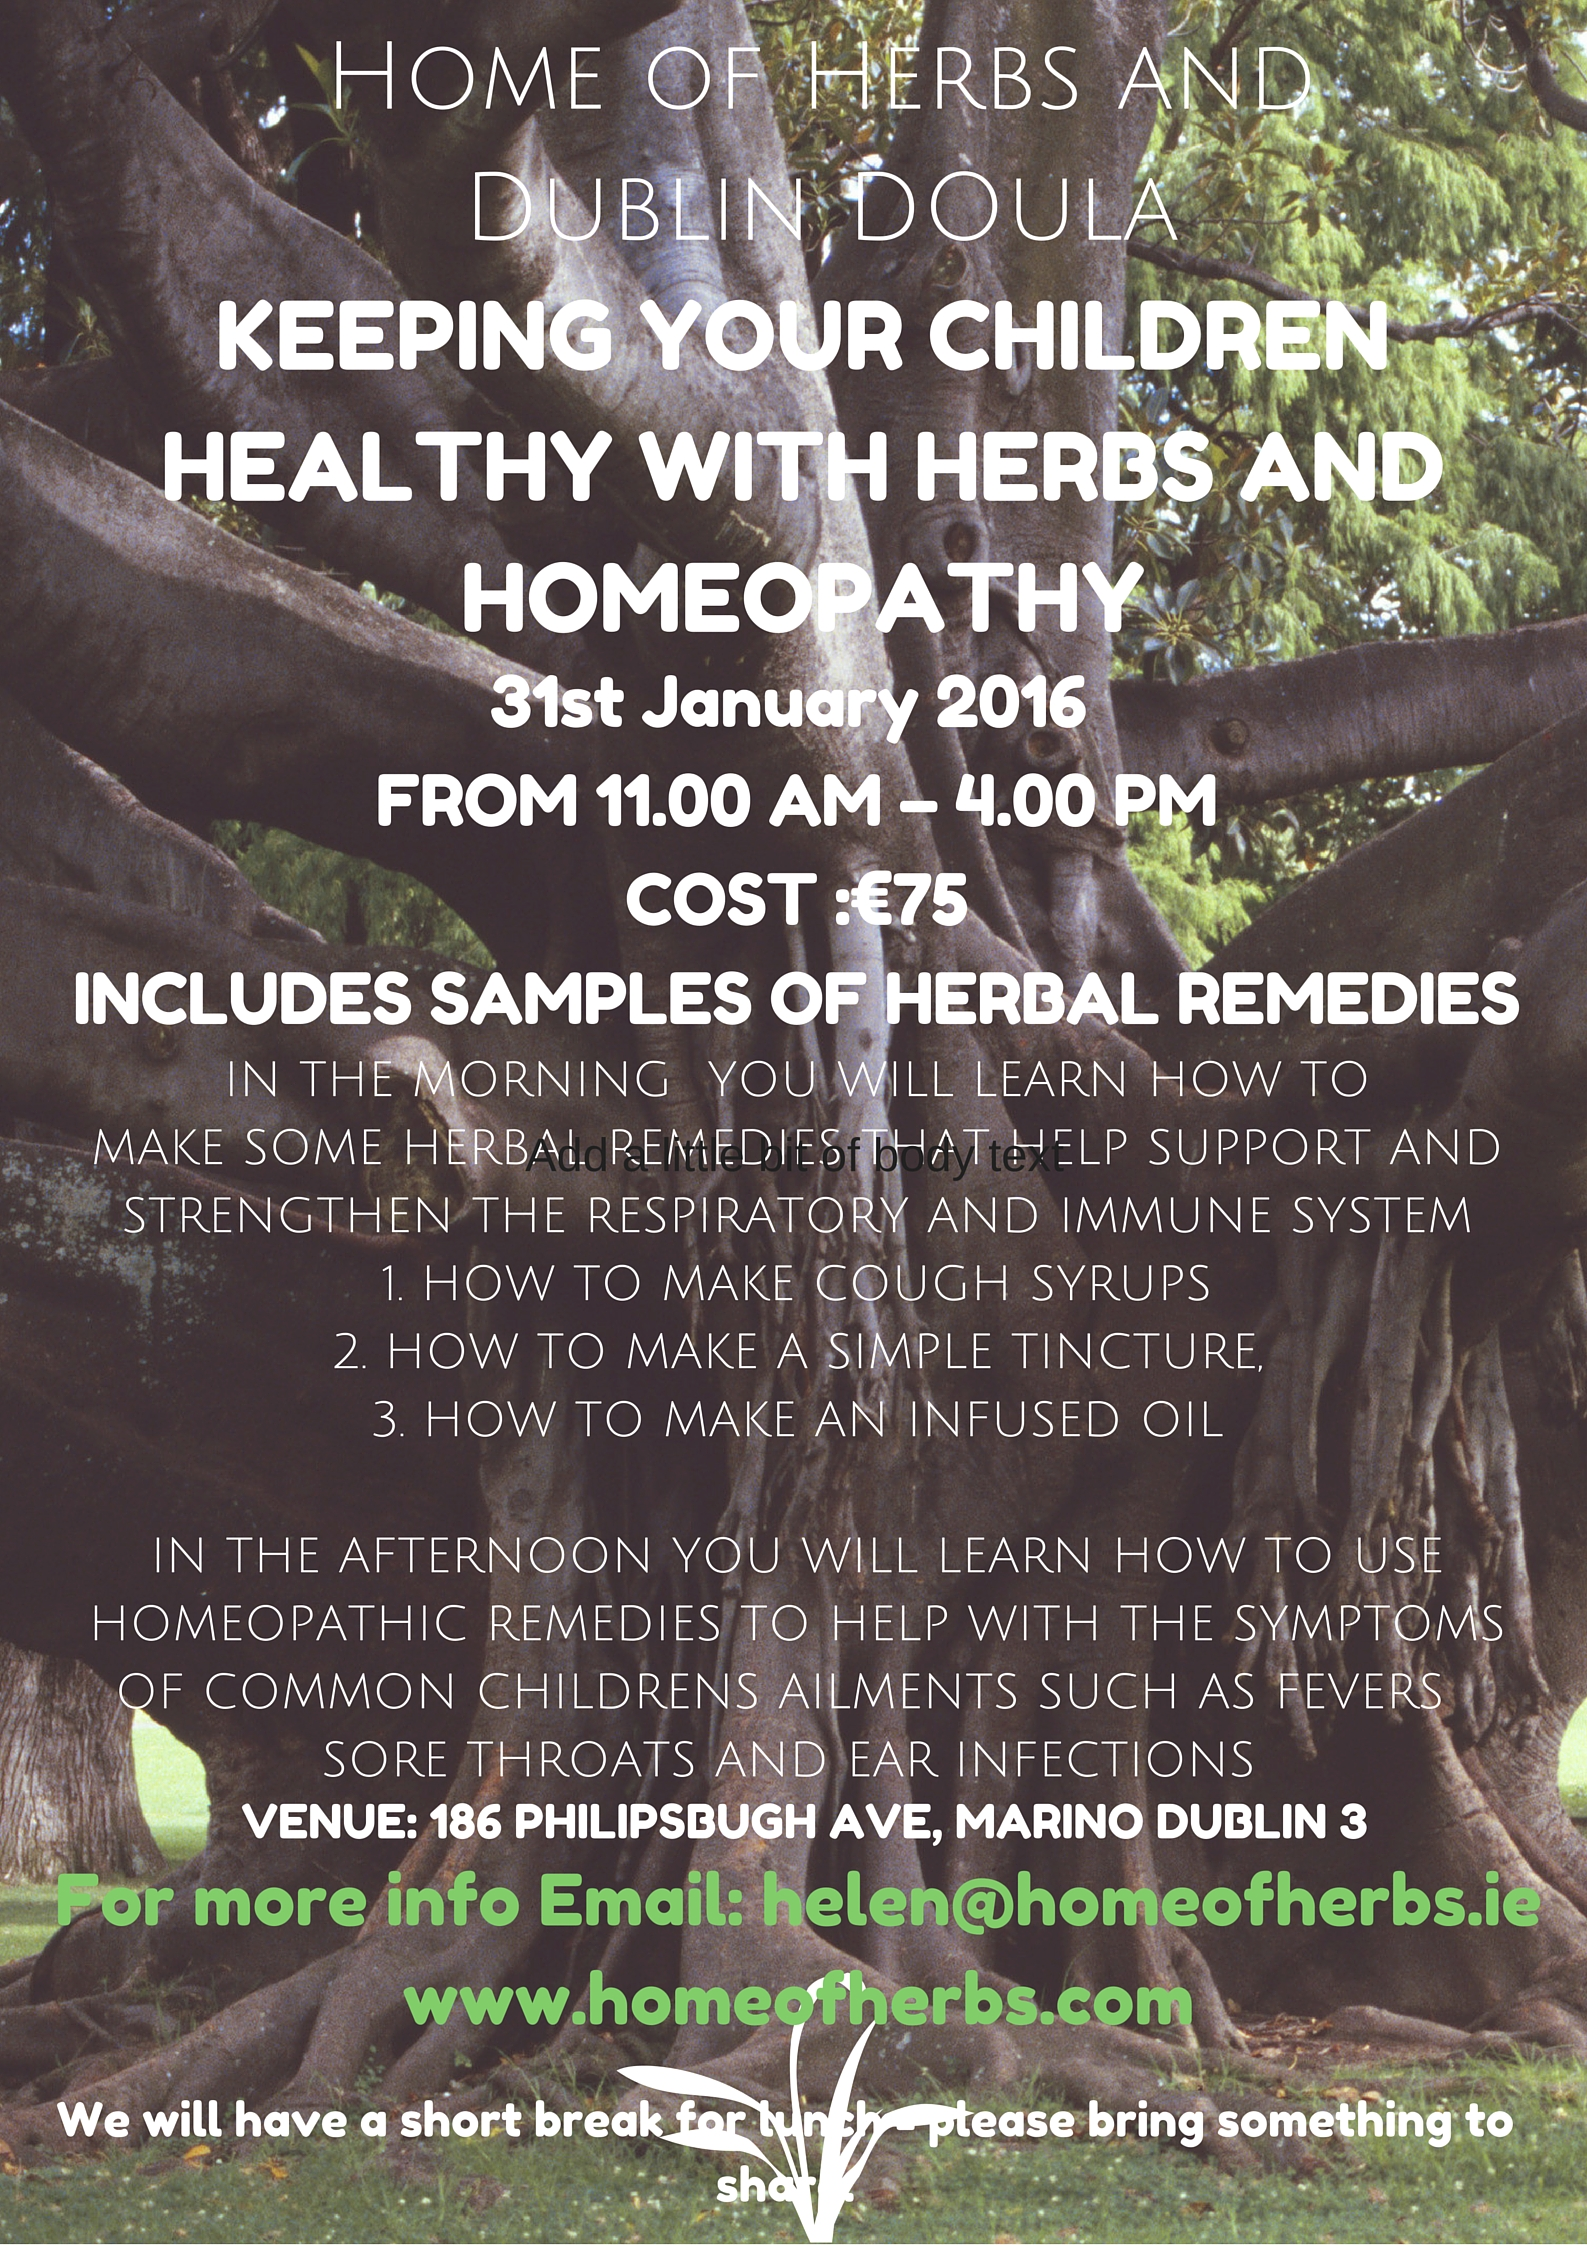 Keeping your Children Healthy with Herbs and Homeopathy